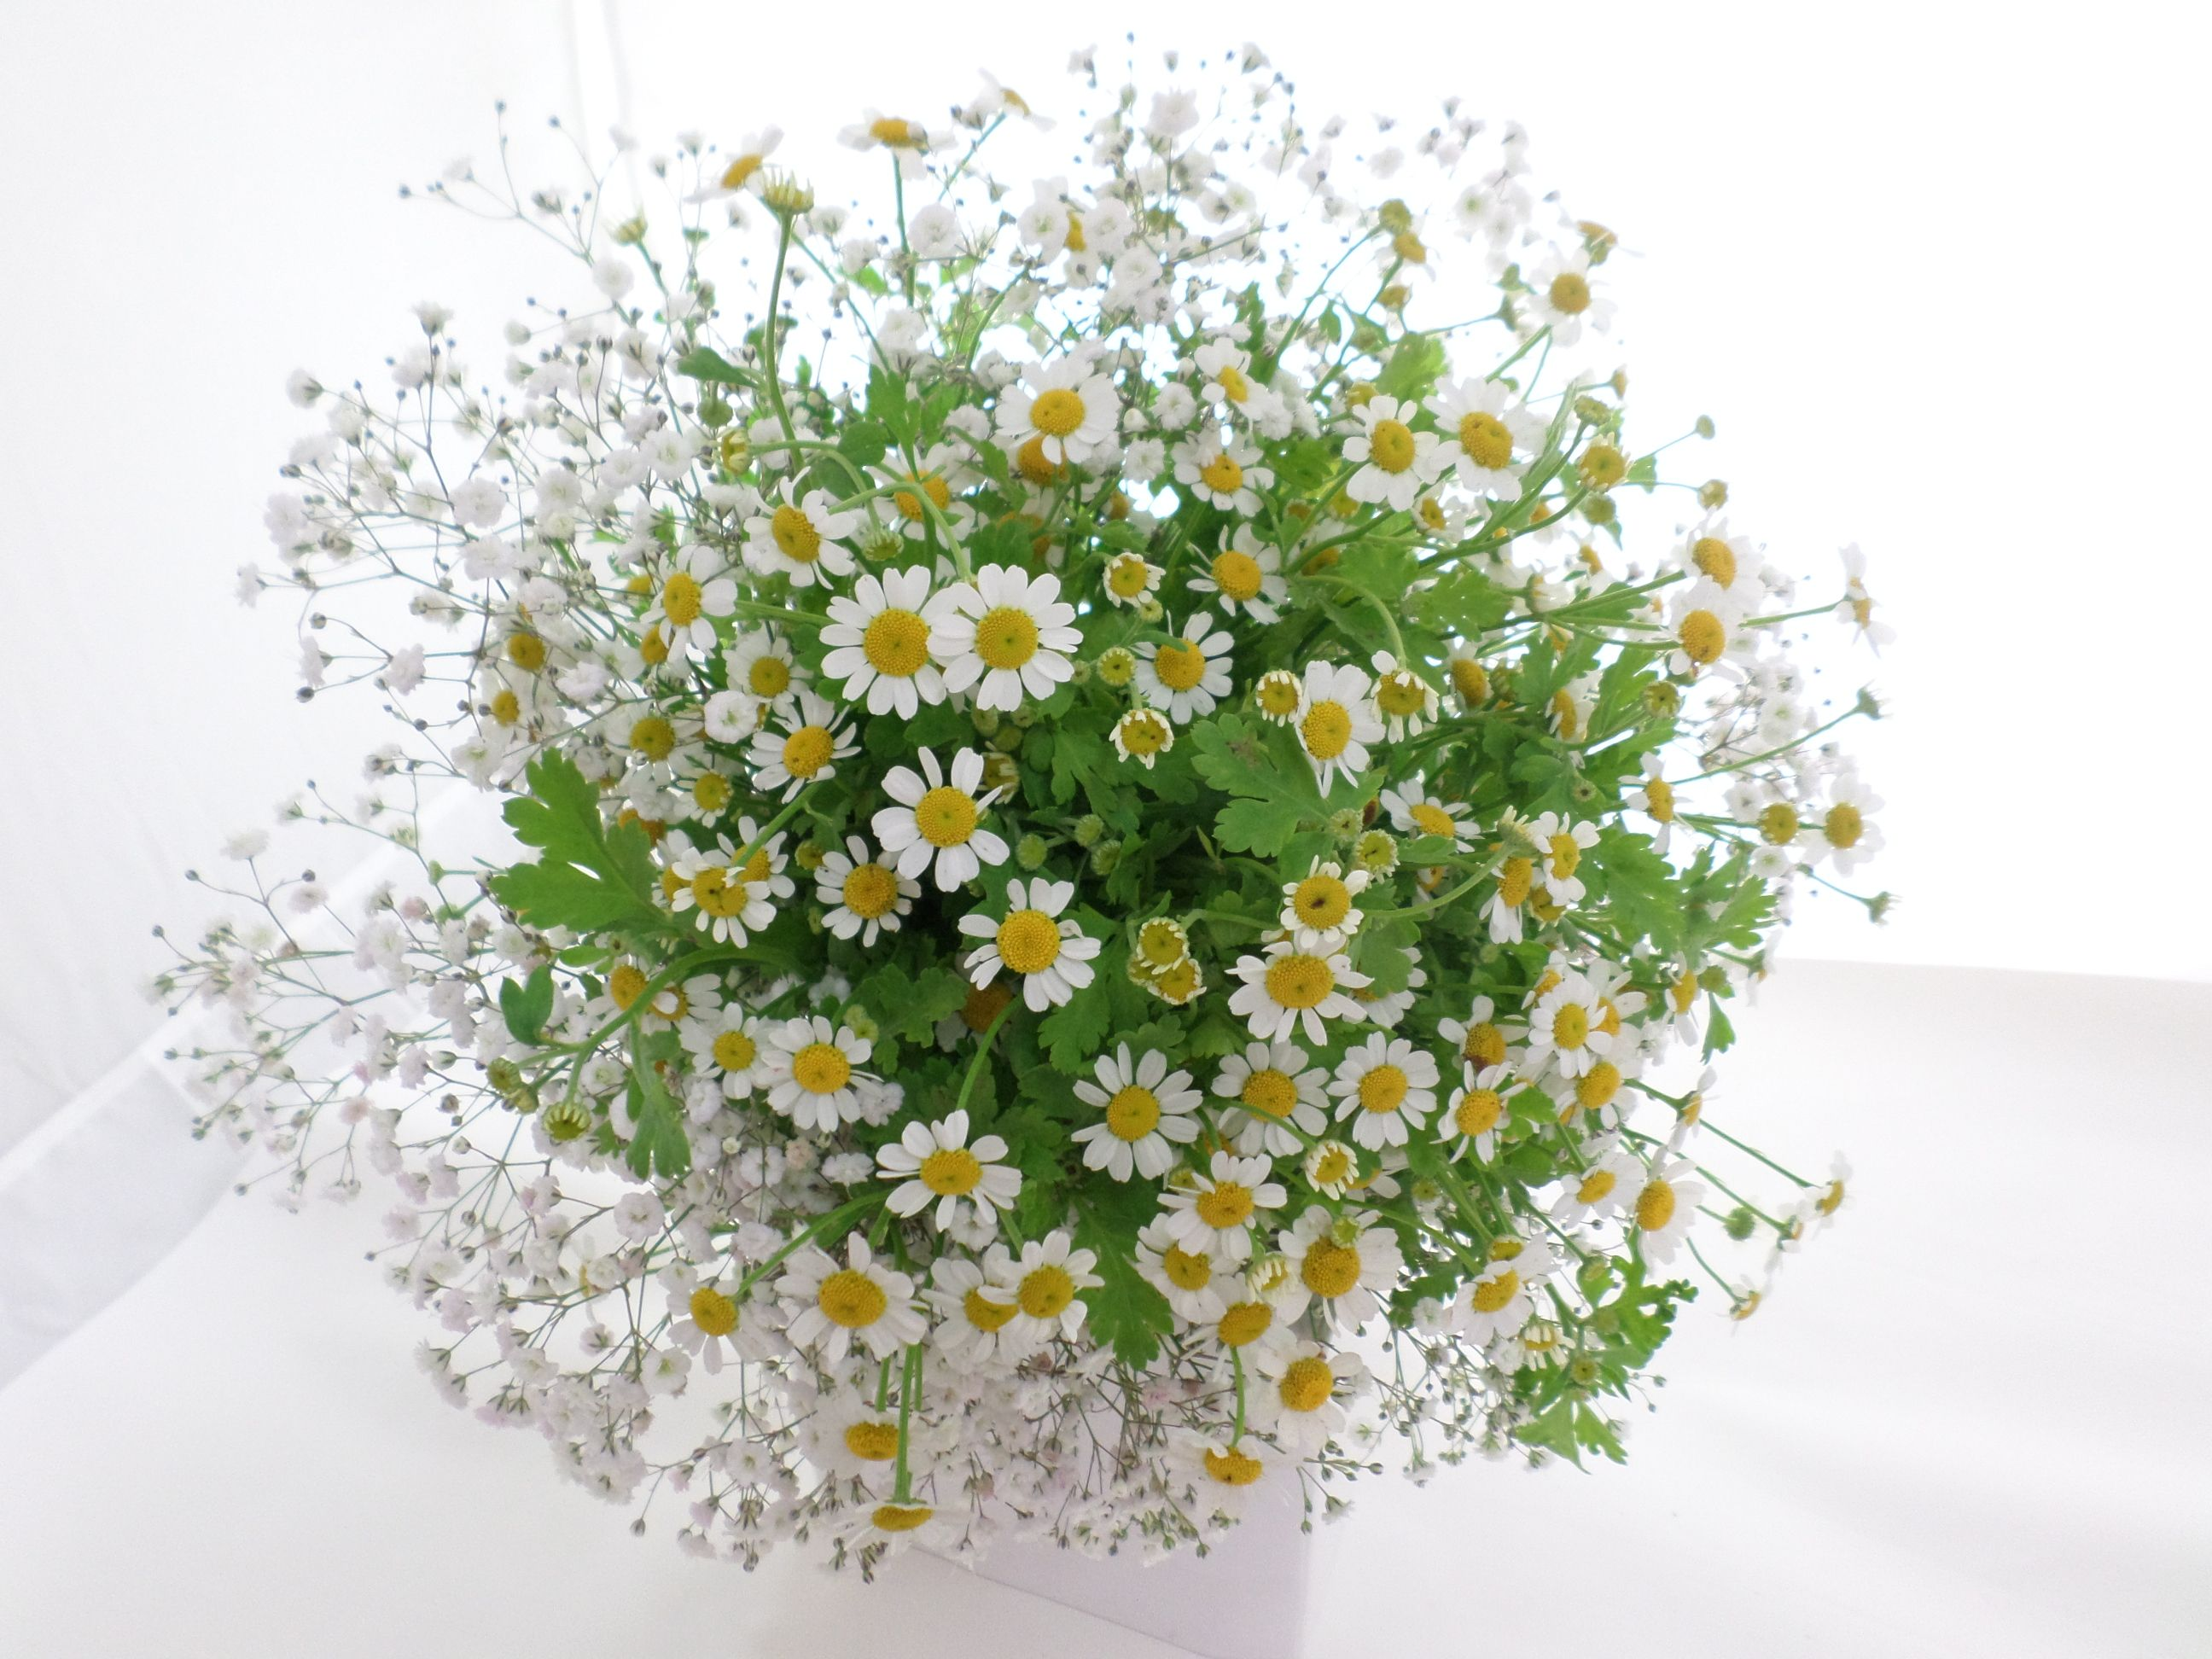 Hand Tied Wild Posy Of White Daisies And Babies Breath Created By Florist Ilene Hamilton Nz Blumenstrauss Schone Blumen Blumen Blumenstrauss